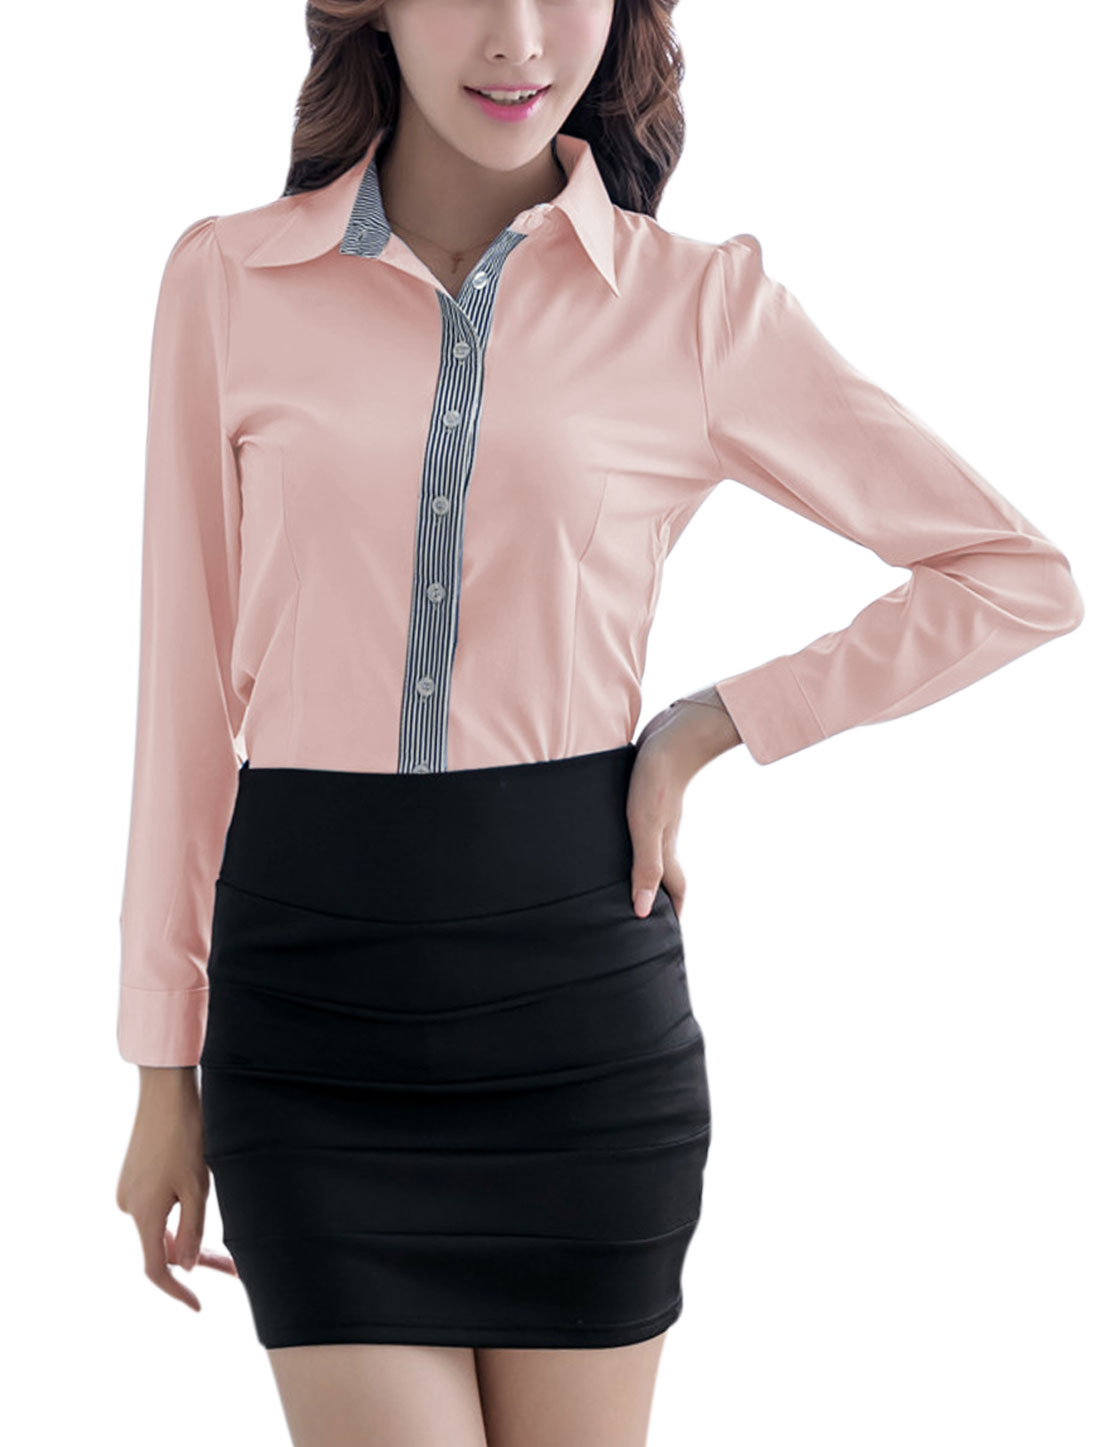 Lady Long Sleeve Button Cuffs Stripes Detail Leisure Shirt Pink L